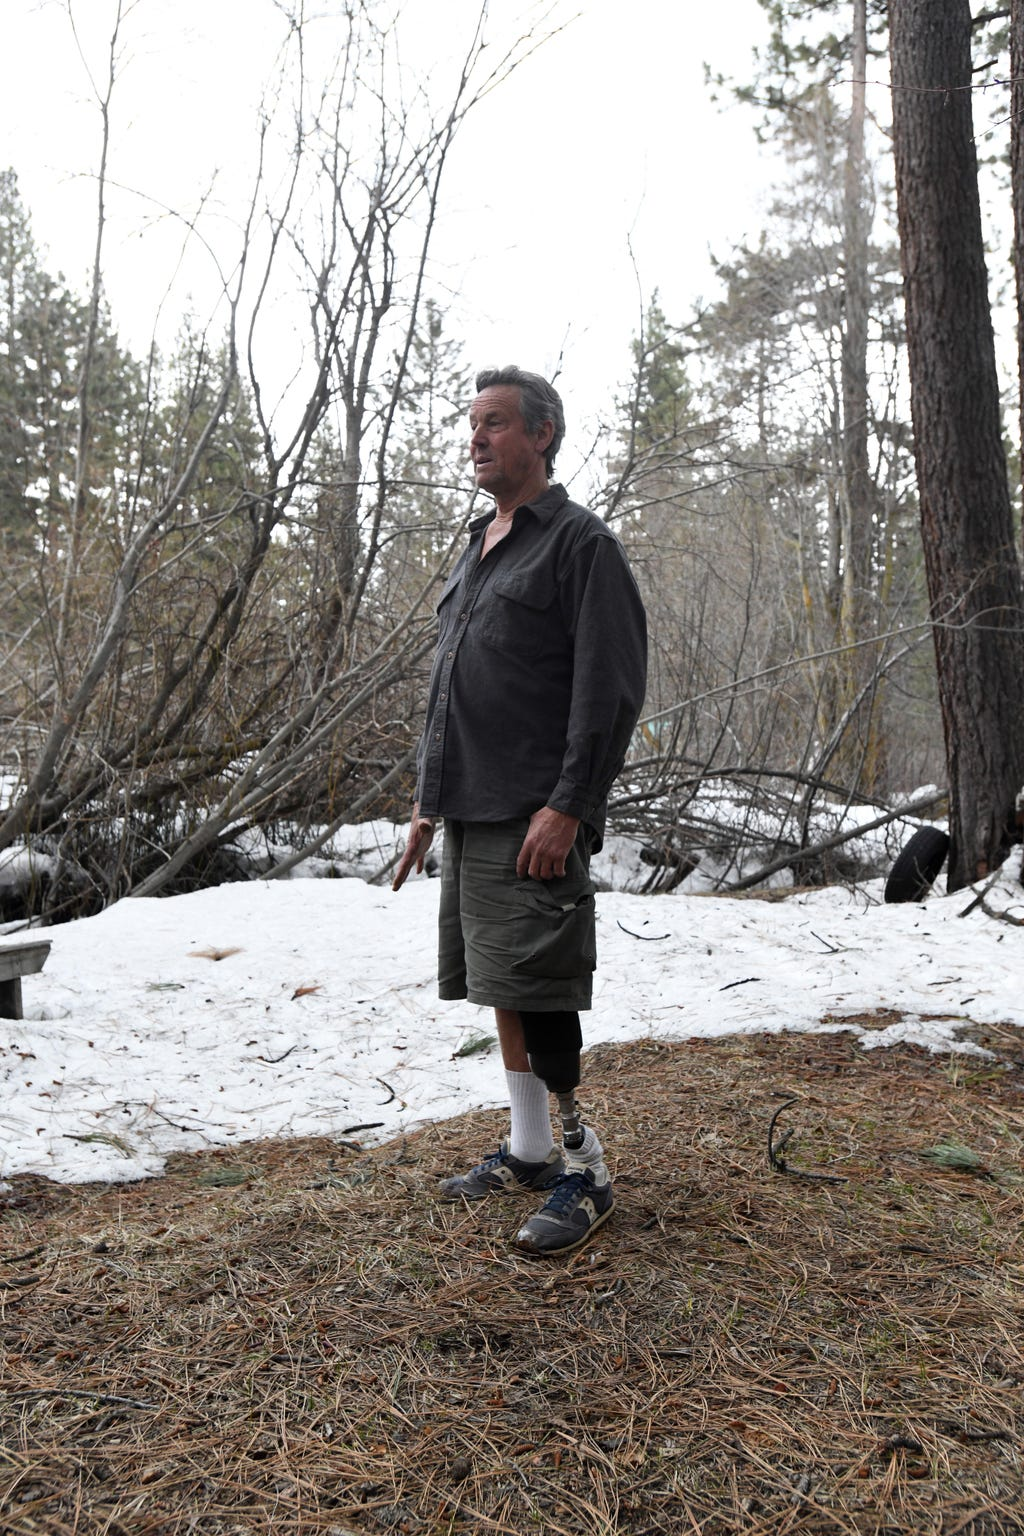 Alan McMahon, 62, lost his leg in 2018 to a Nevada Department of Transportation snowplow driven by a state employee who was high on meth.